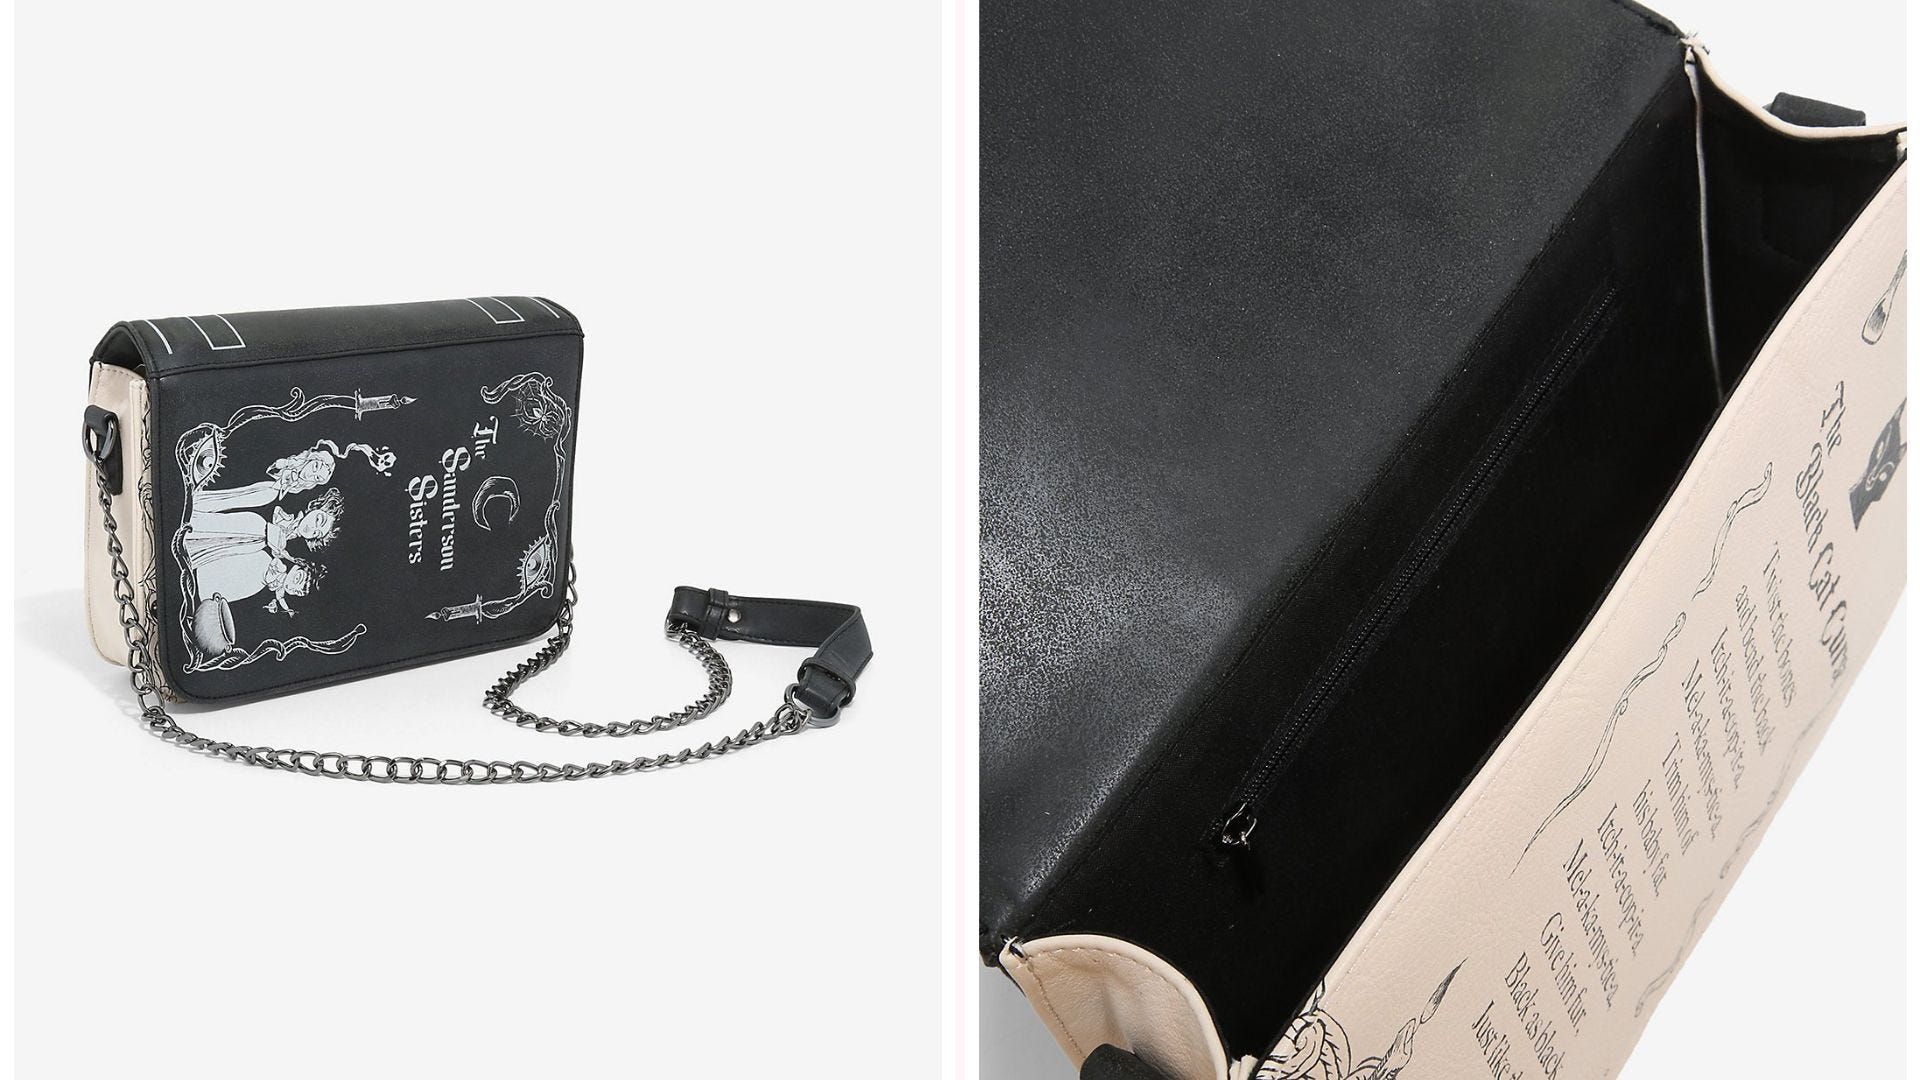 """Crossbody purse with Sanderson Sisters imagery on the front; interior view showing a """"spell"""" in writing"""